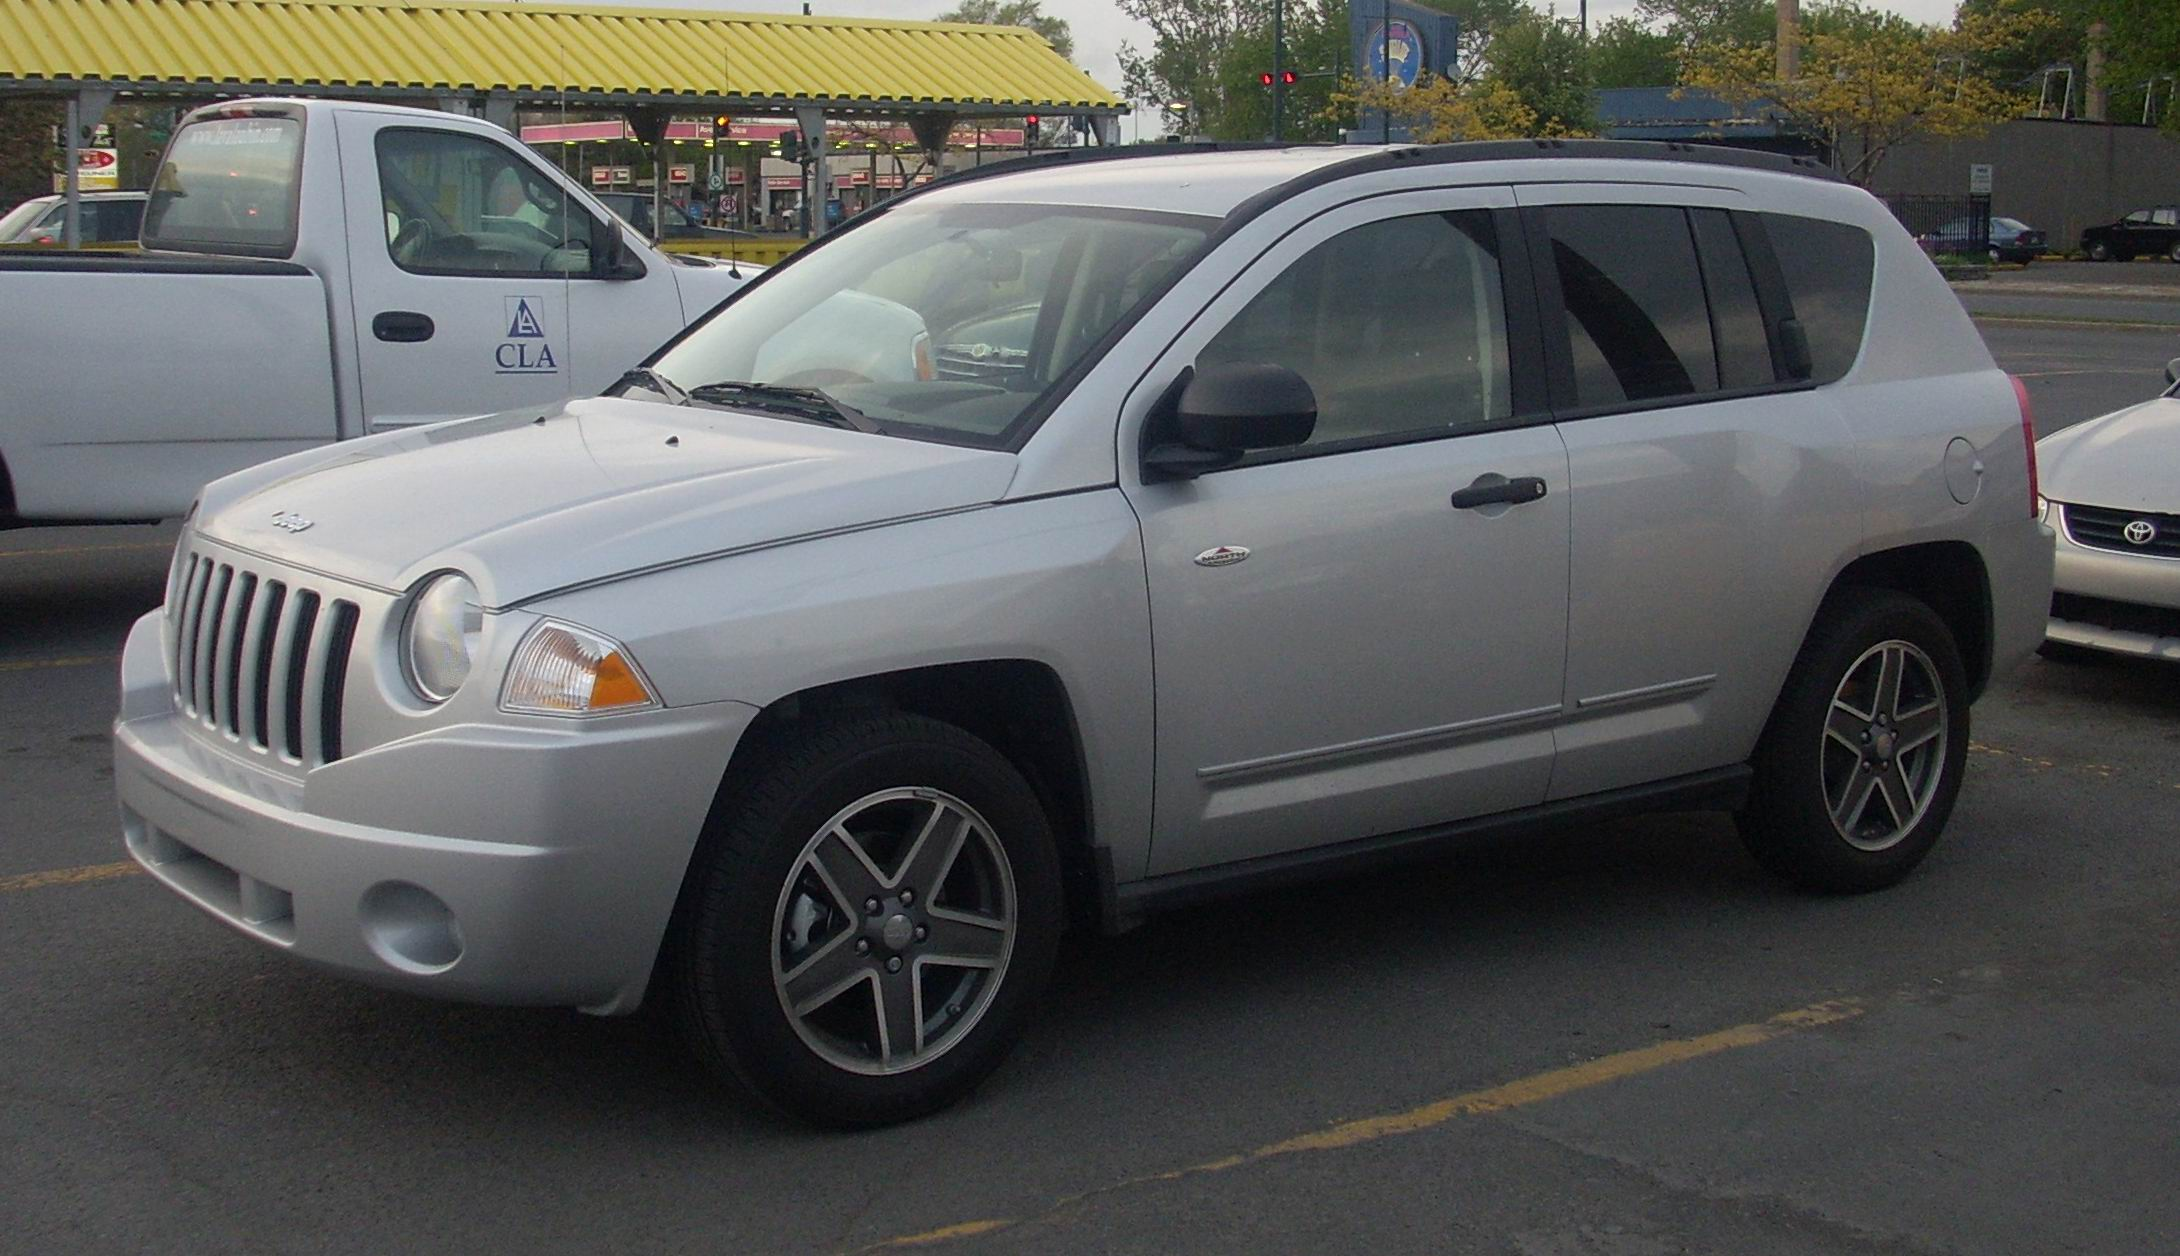 file:'08 jeep compass north edition - wikimedia commons